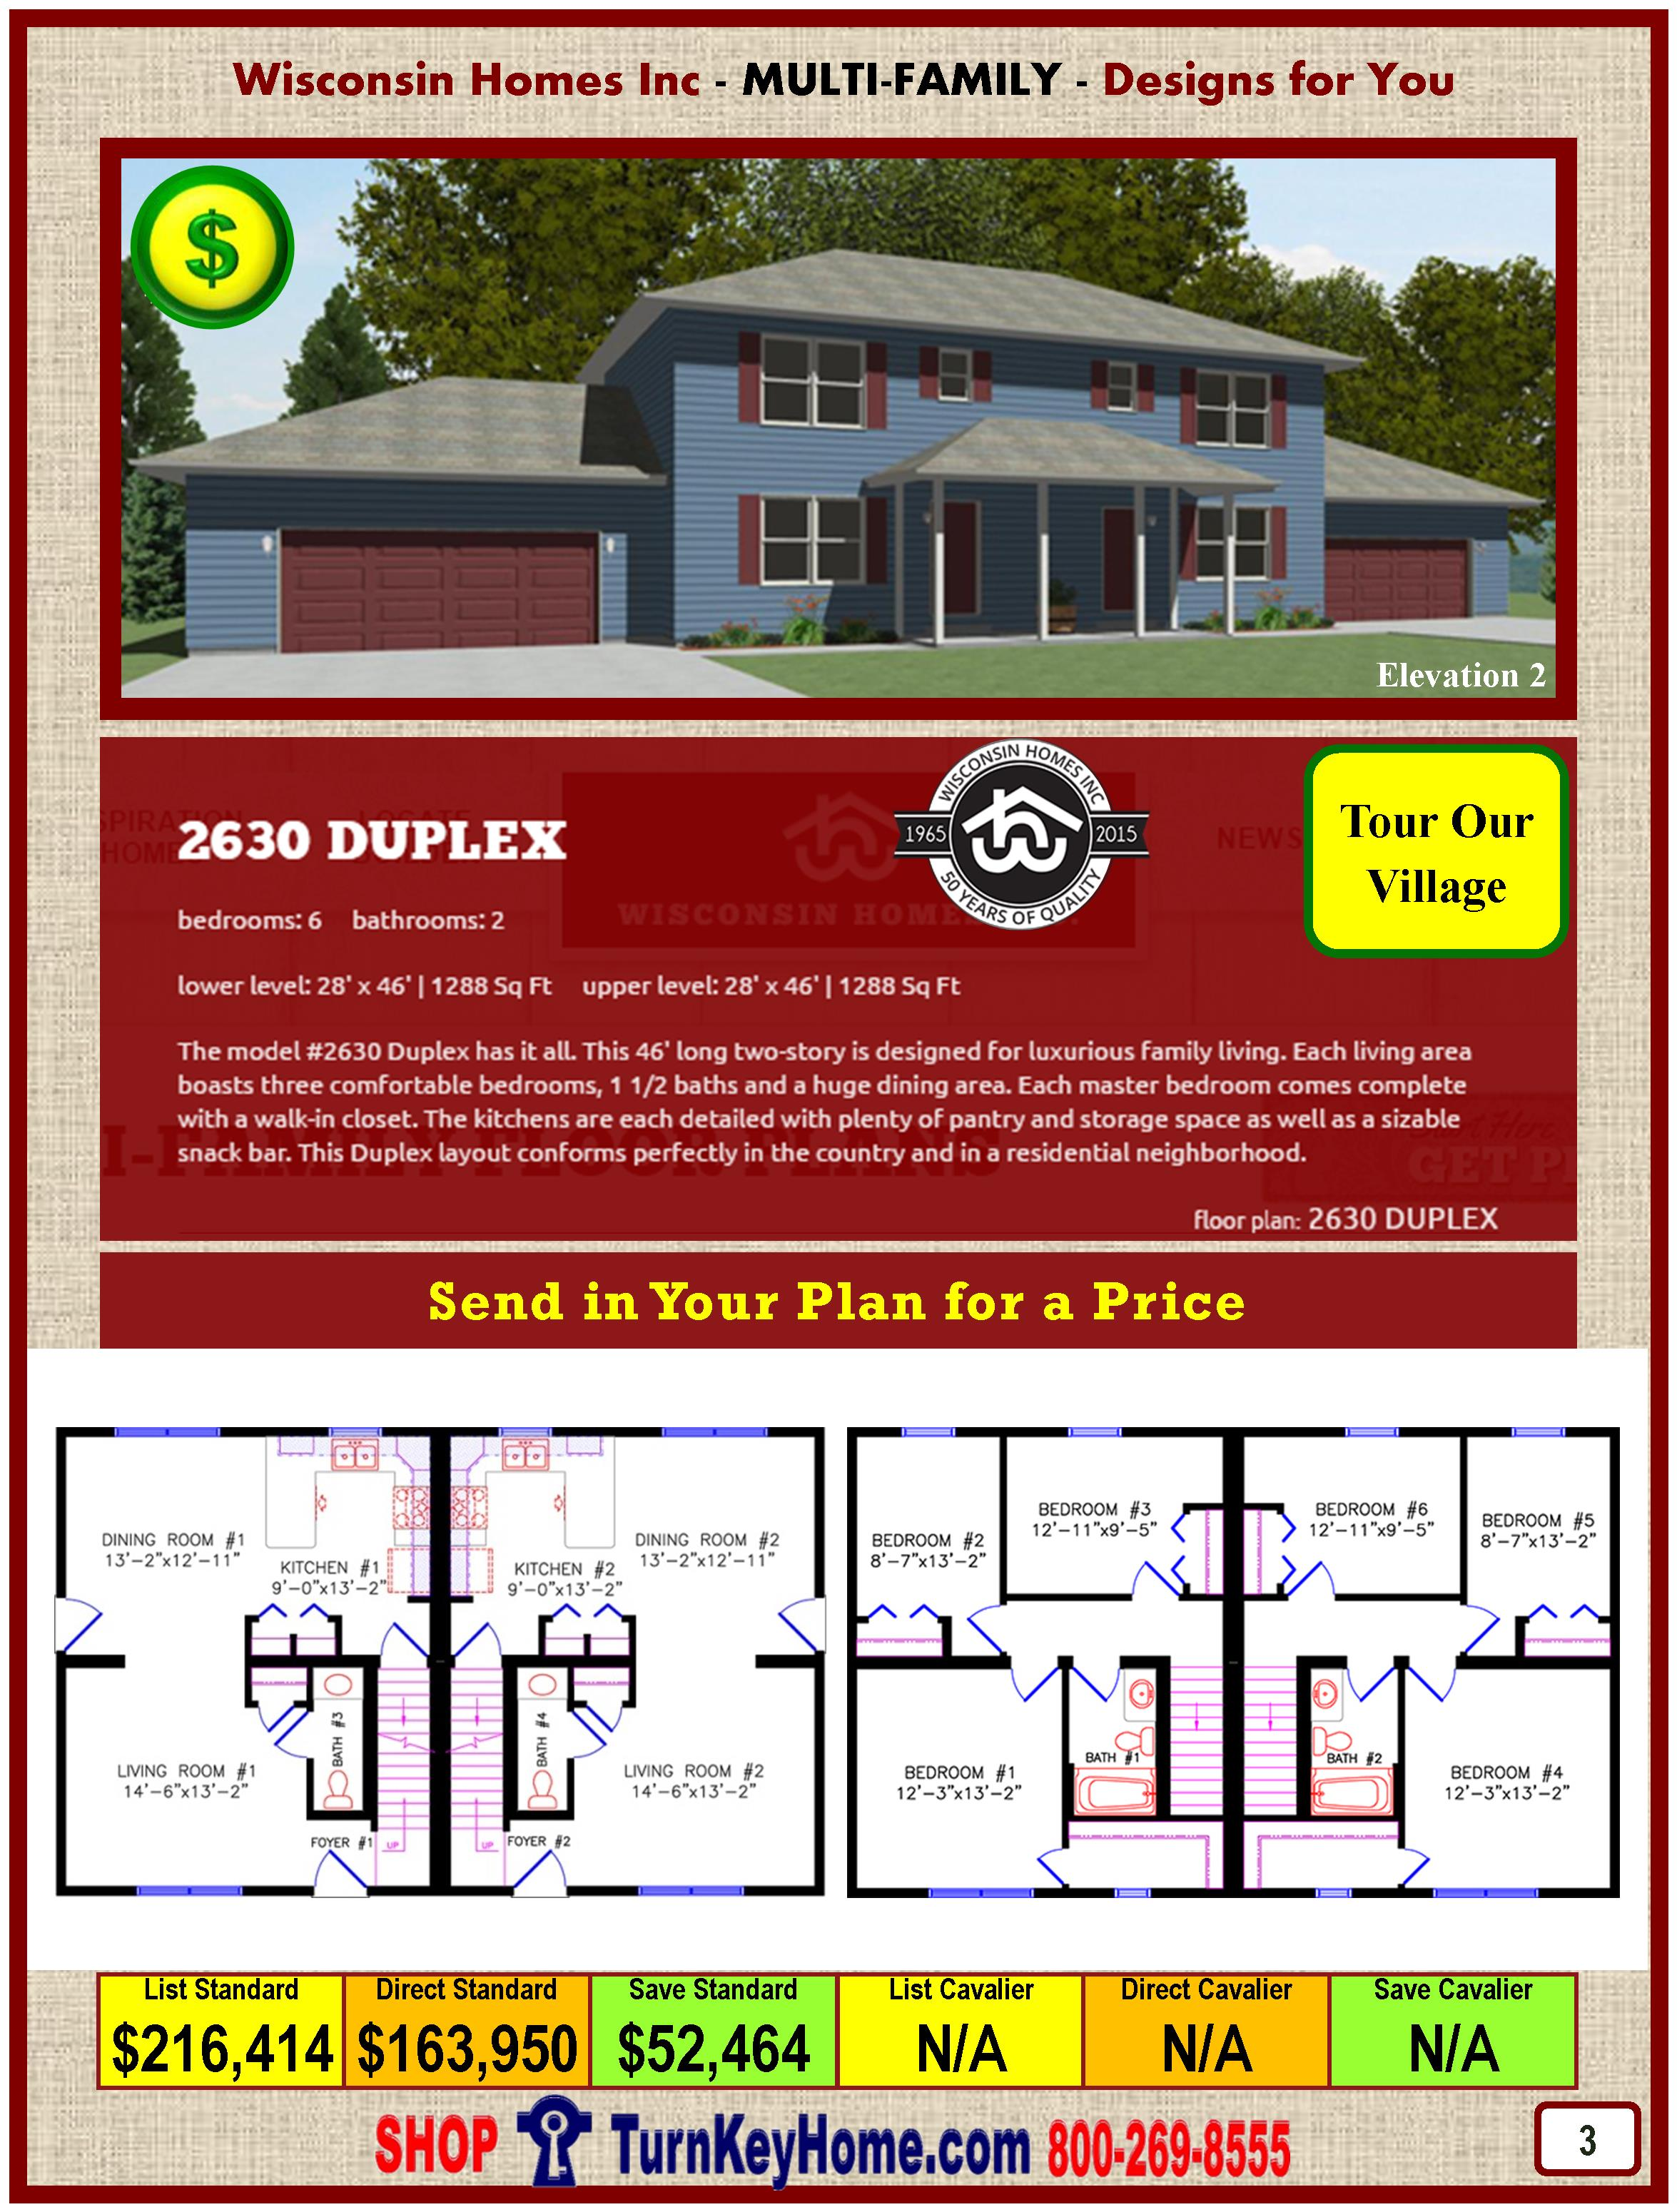 Duplex 2630 Elevation 2 Plan and Price: Wisconsin Homes Inc Modular Home Marshfield Wisconsin